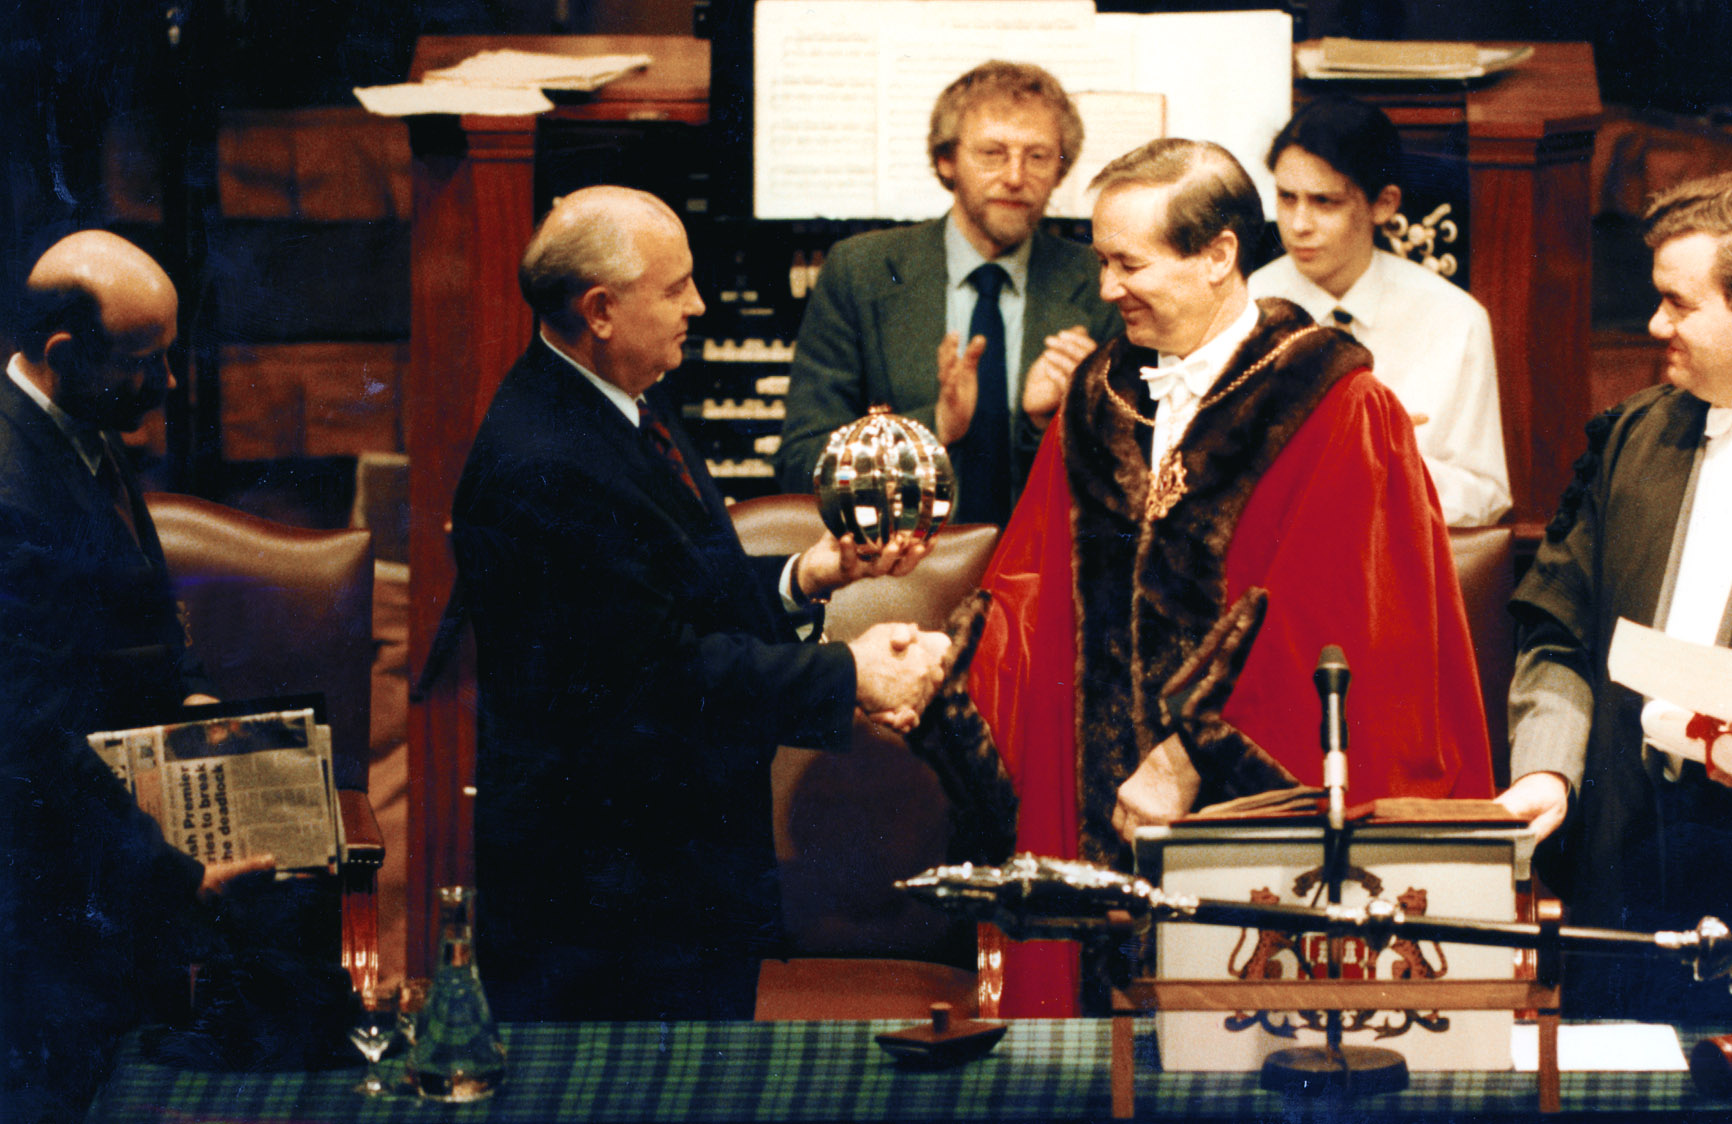 Former Soviet leader Mikhail Gorbachev became a Freeman of Aberdeen when Lord Provost Jim Wyness presented him with the award at a conferral ceremony in the Music Hall on December 6 1993.